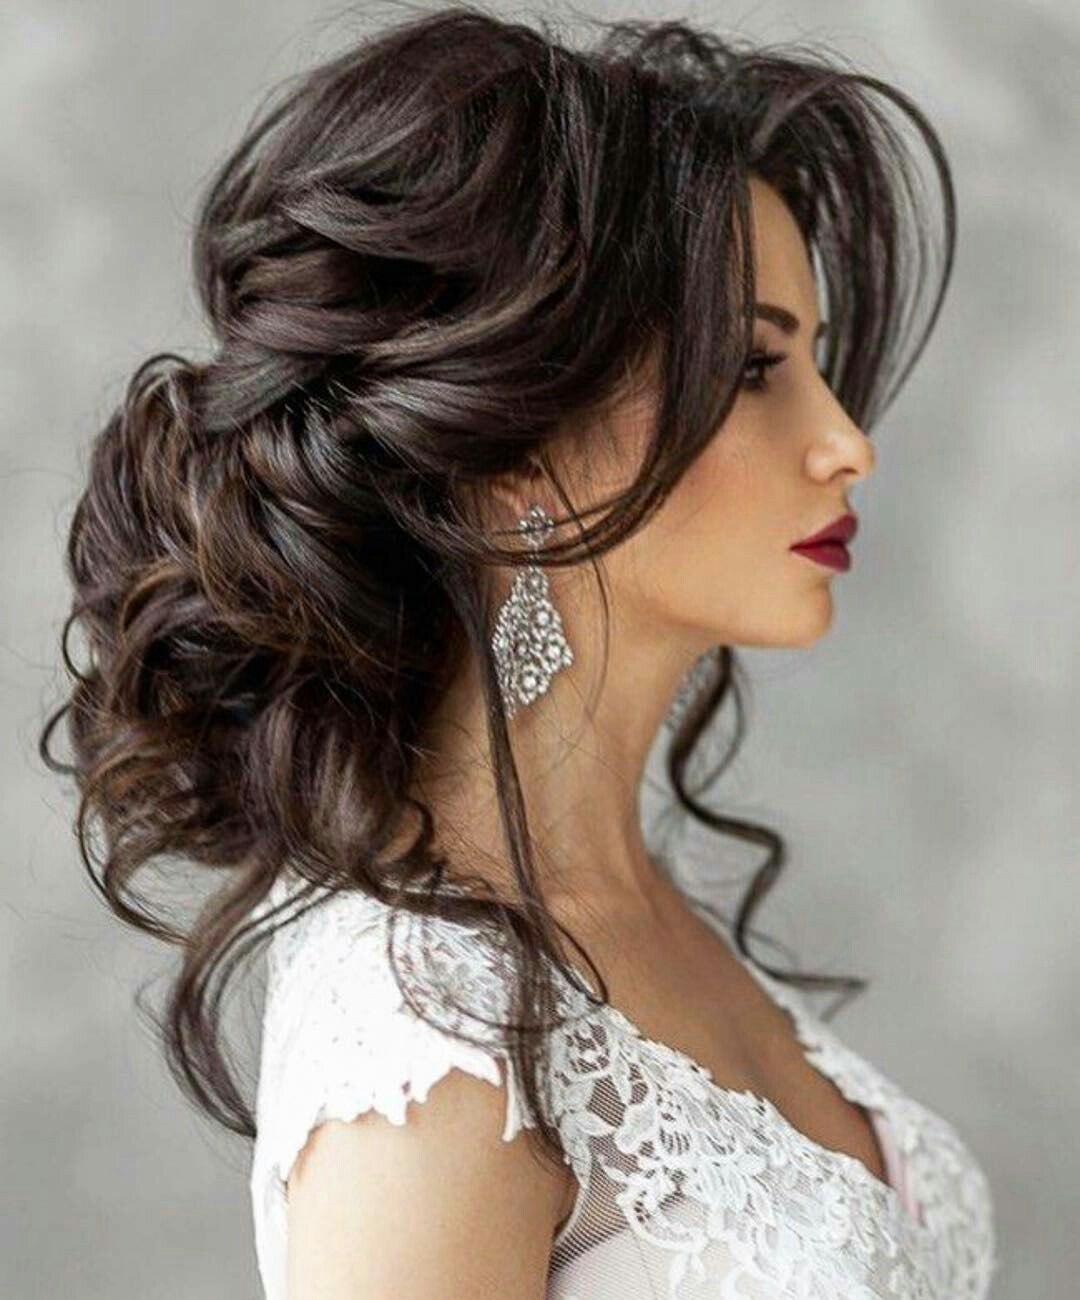 Greek Hairstyles: Grecian Hairstyle Ideas For Women